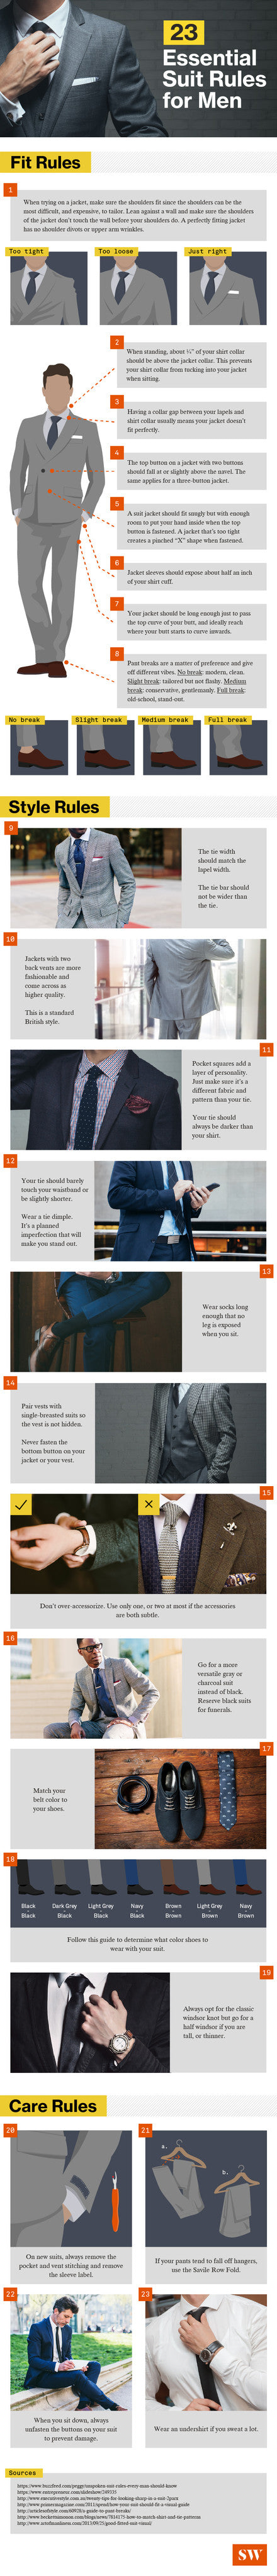 suit rules for men